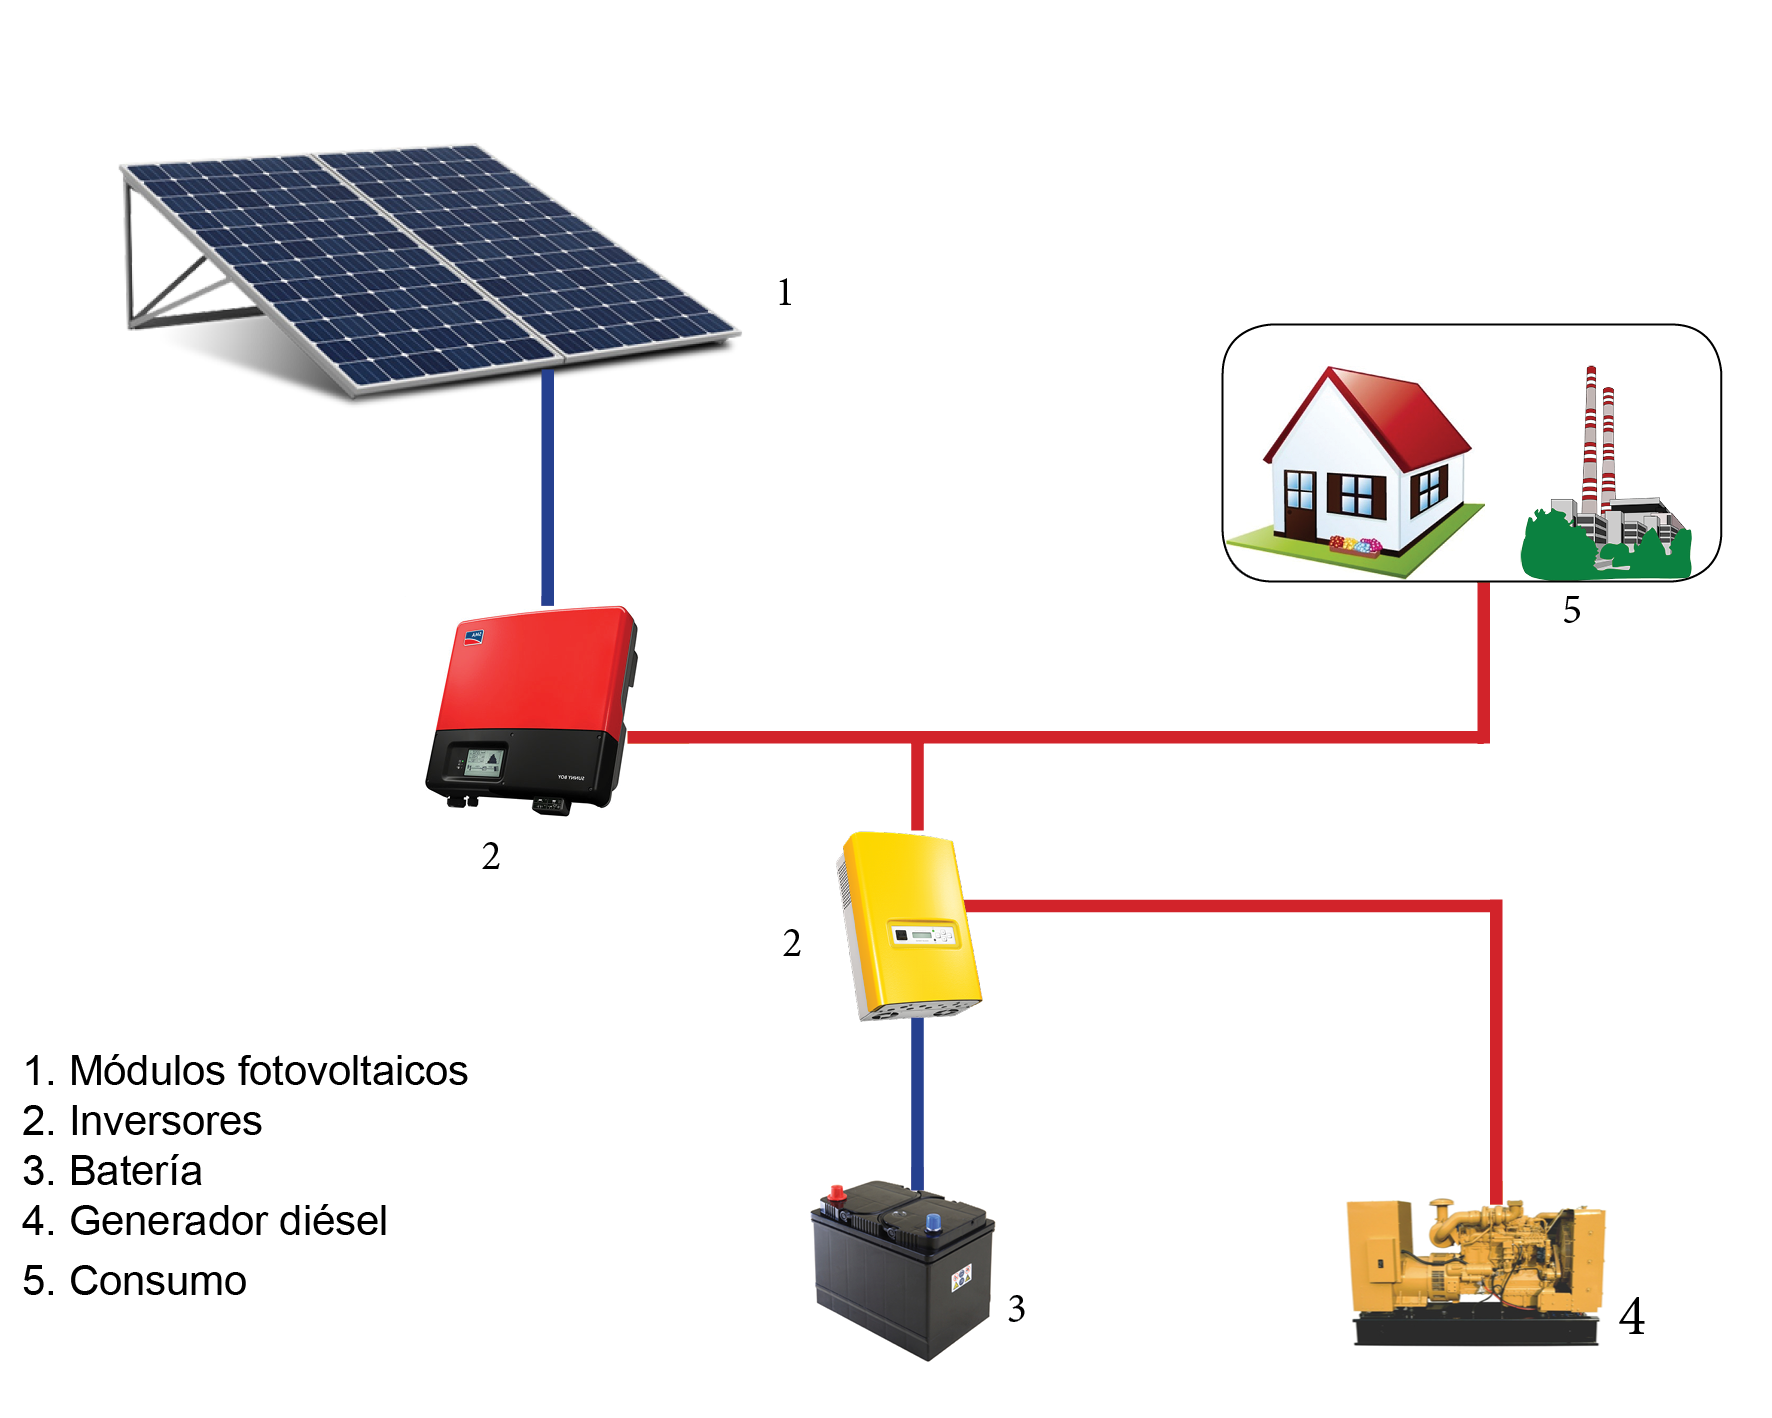 Meet This Solar Energy Solution That Costs Just Rs 490 Per Month besides Magnum Me2512 moreover 20150319 Solar Powered LED Luminaires From Philips Can Brighten The Homes Of Millions furthermore 272729999042 furthermore Applications. on solar panel charging system